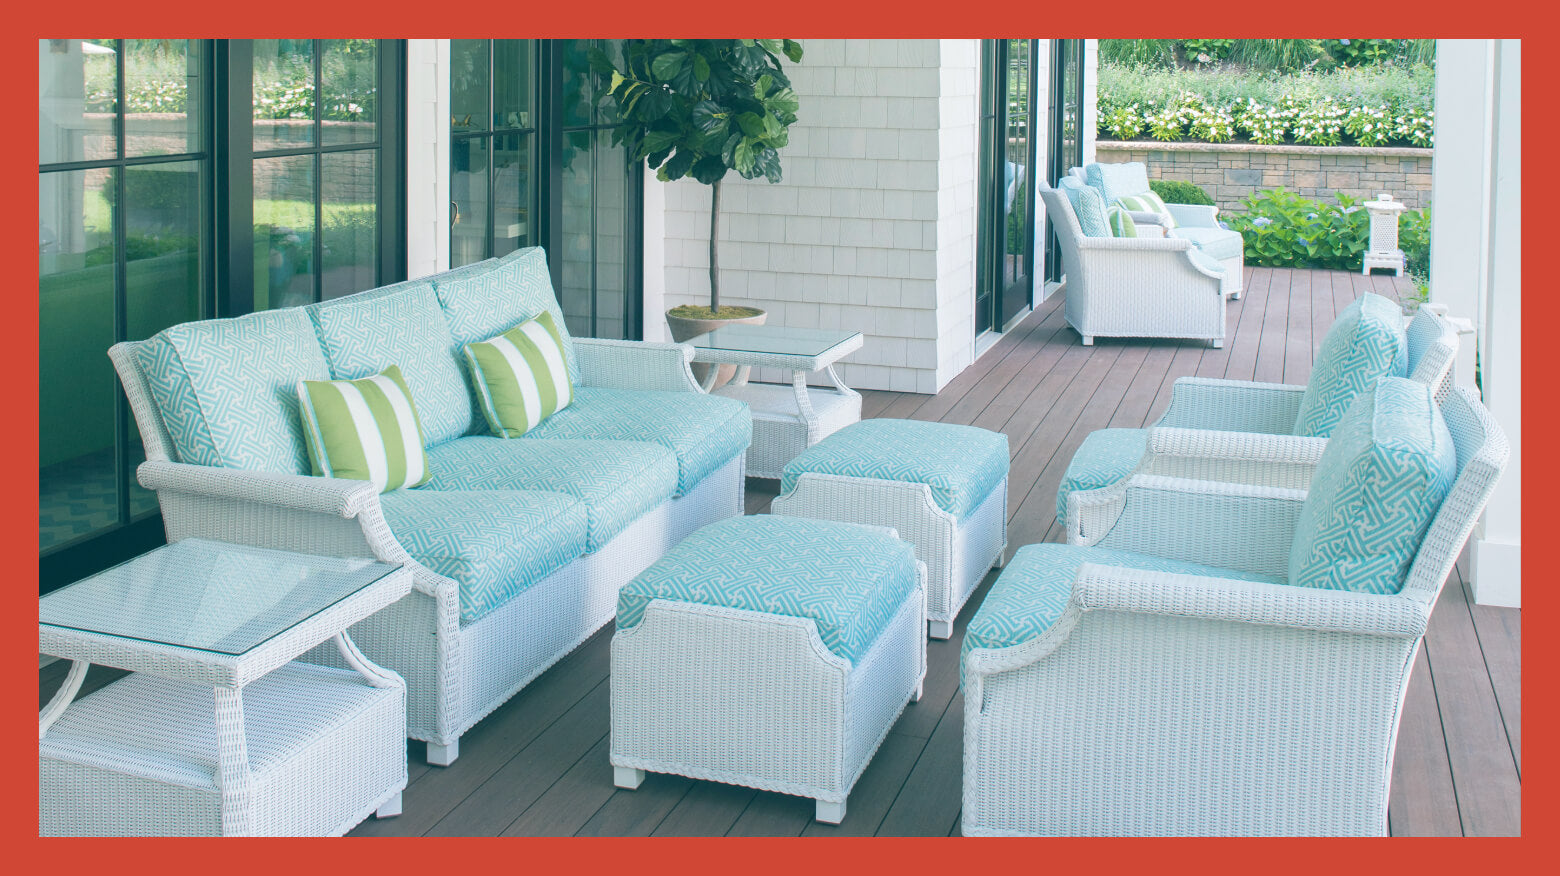 Adorable White Wicker Outdoor Furniture Sets for Valentine's Day